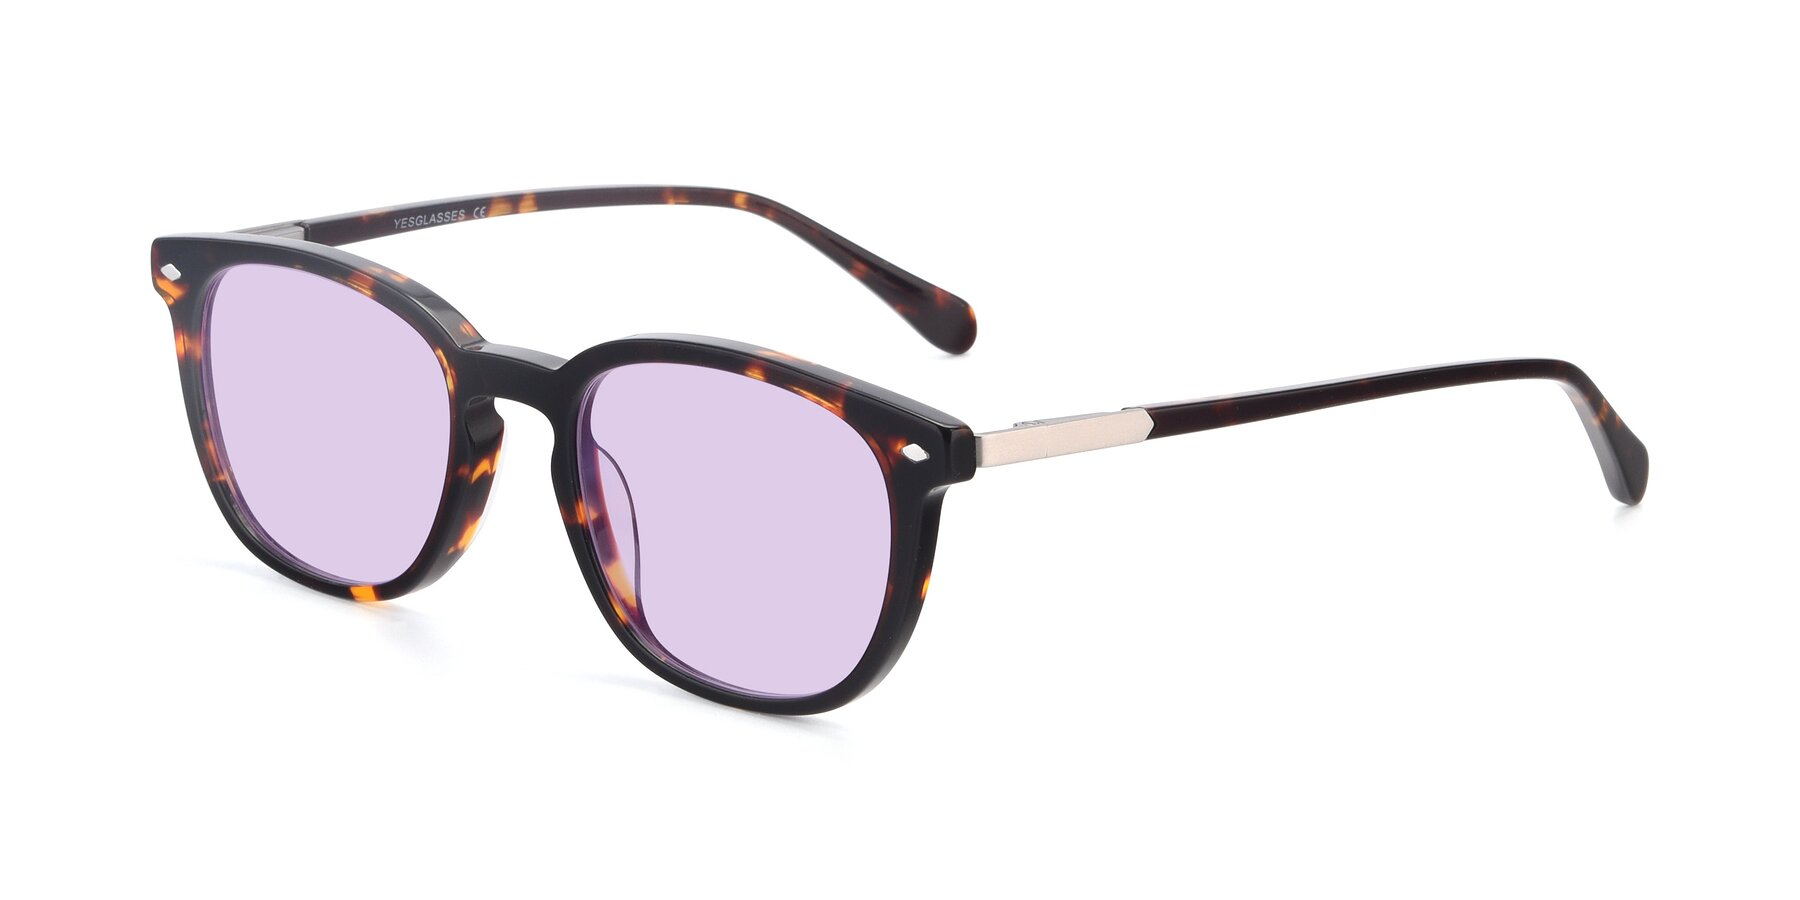 Angle of 17578 in Tortoise with Light Purple Tinted Lenses